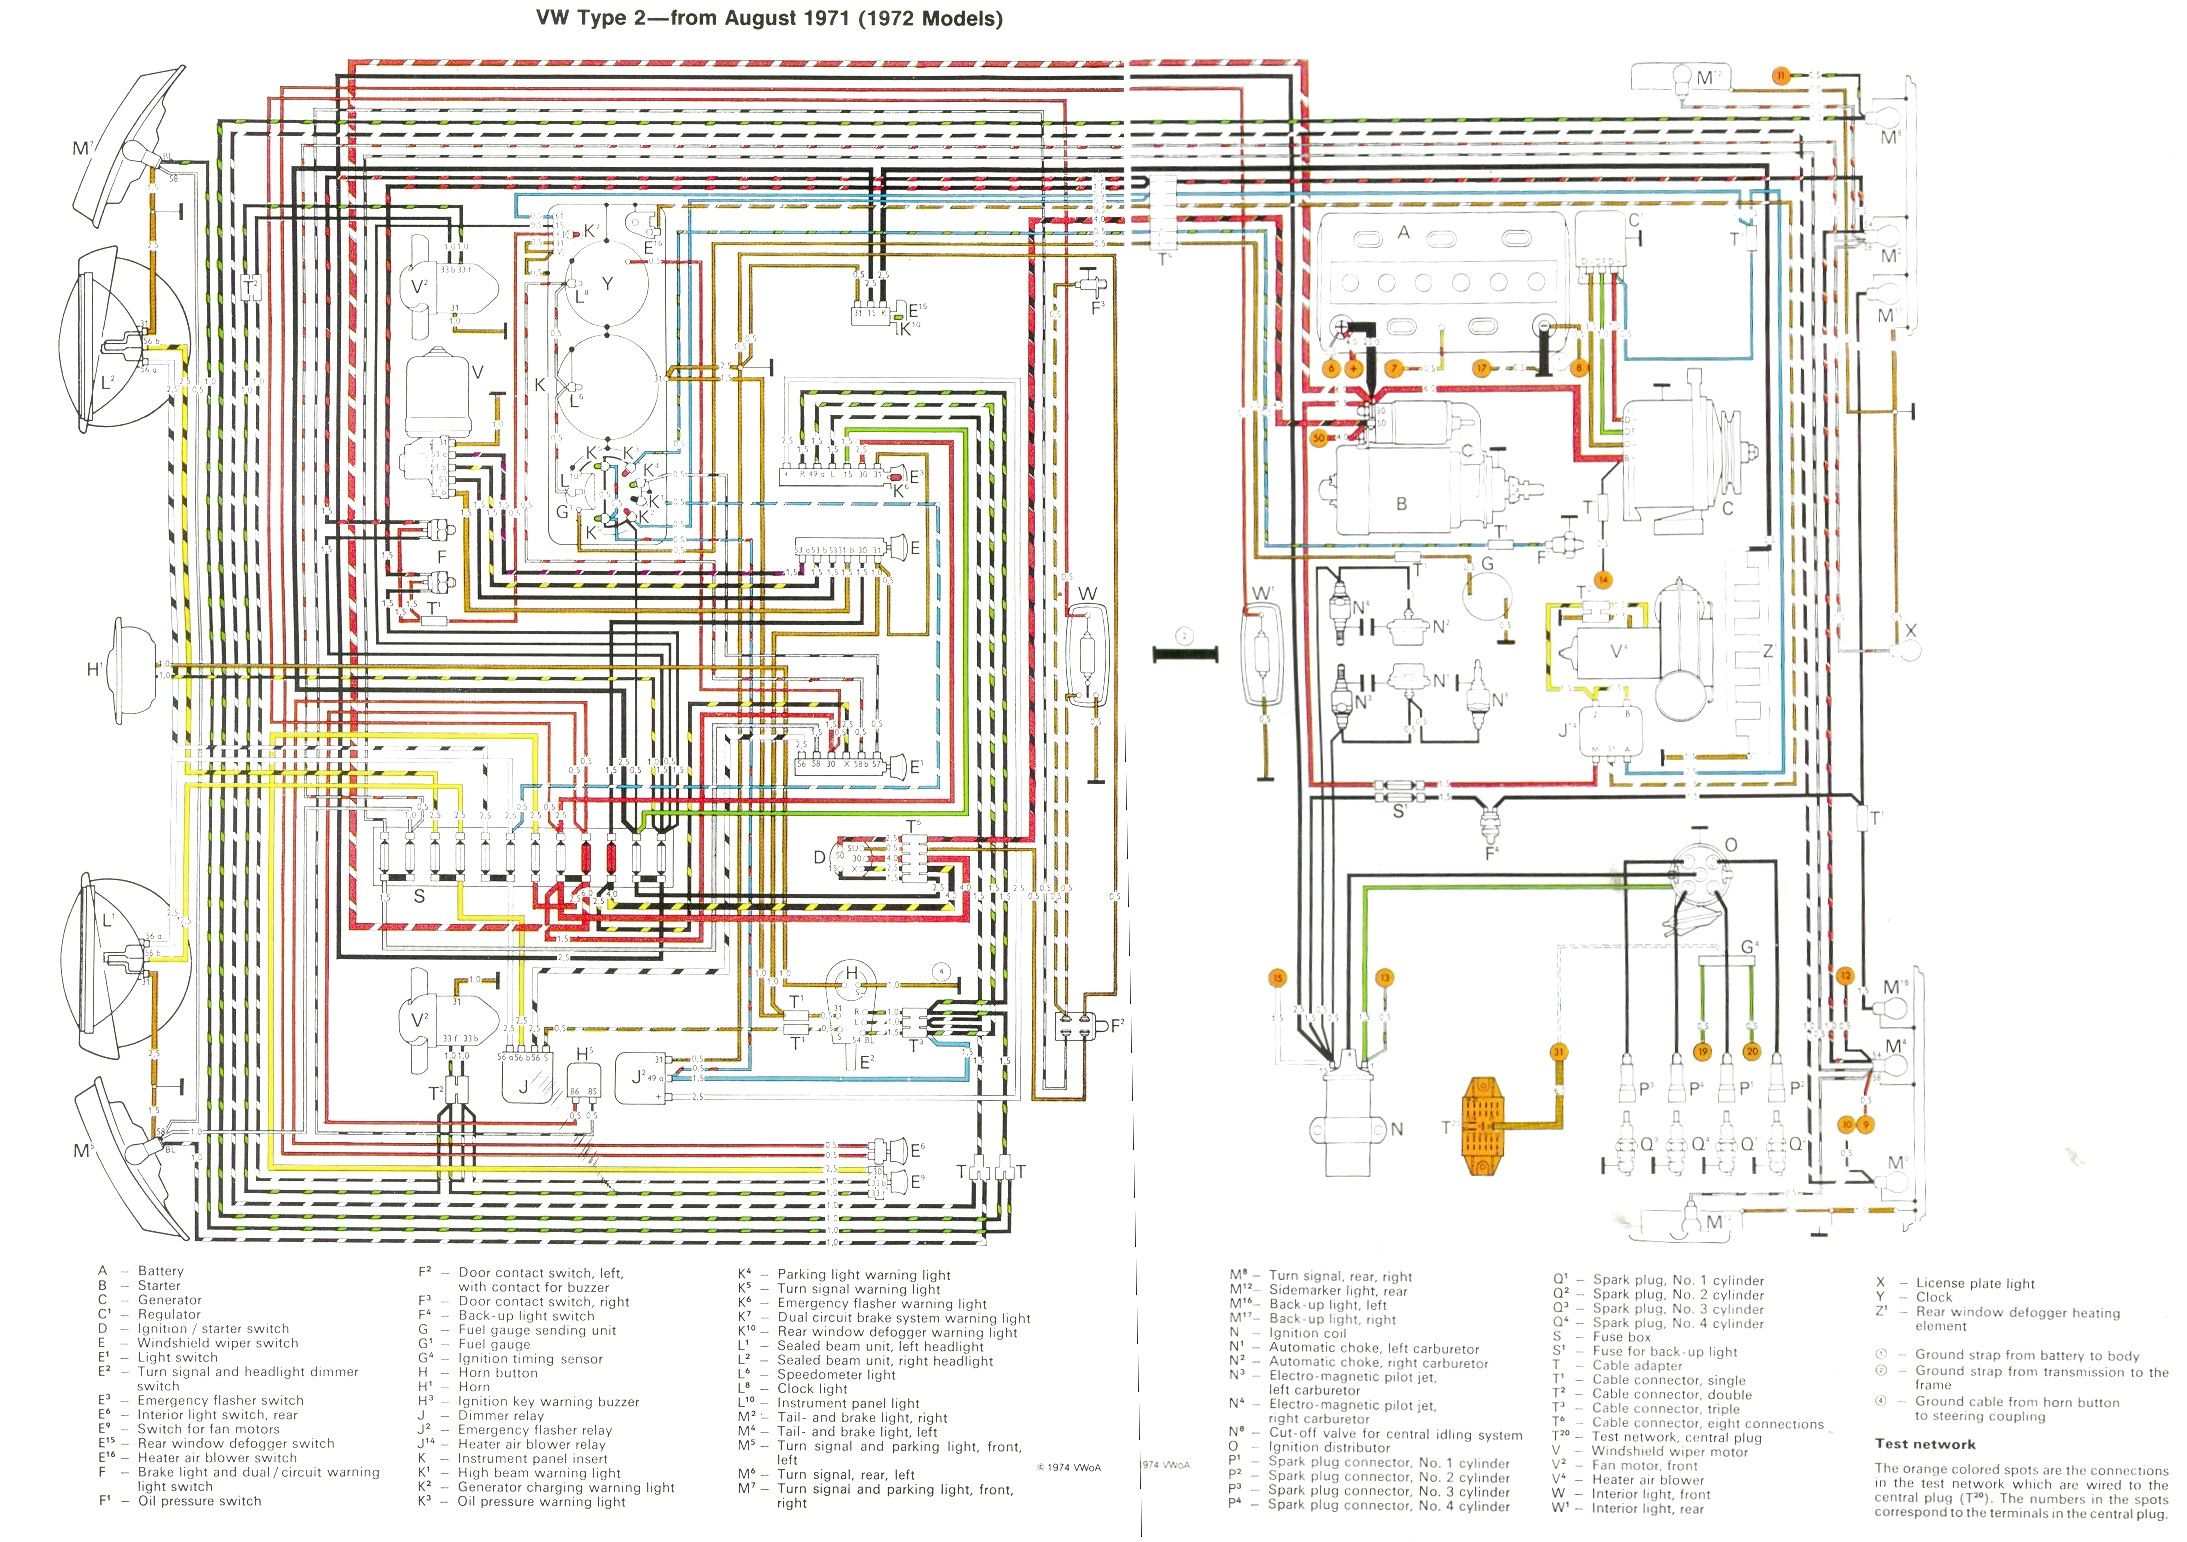 69 Vw Wiring Diagram - Wiring Diagrams List